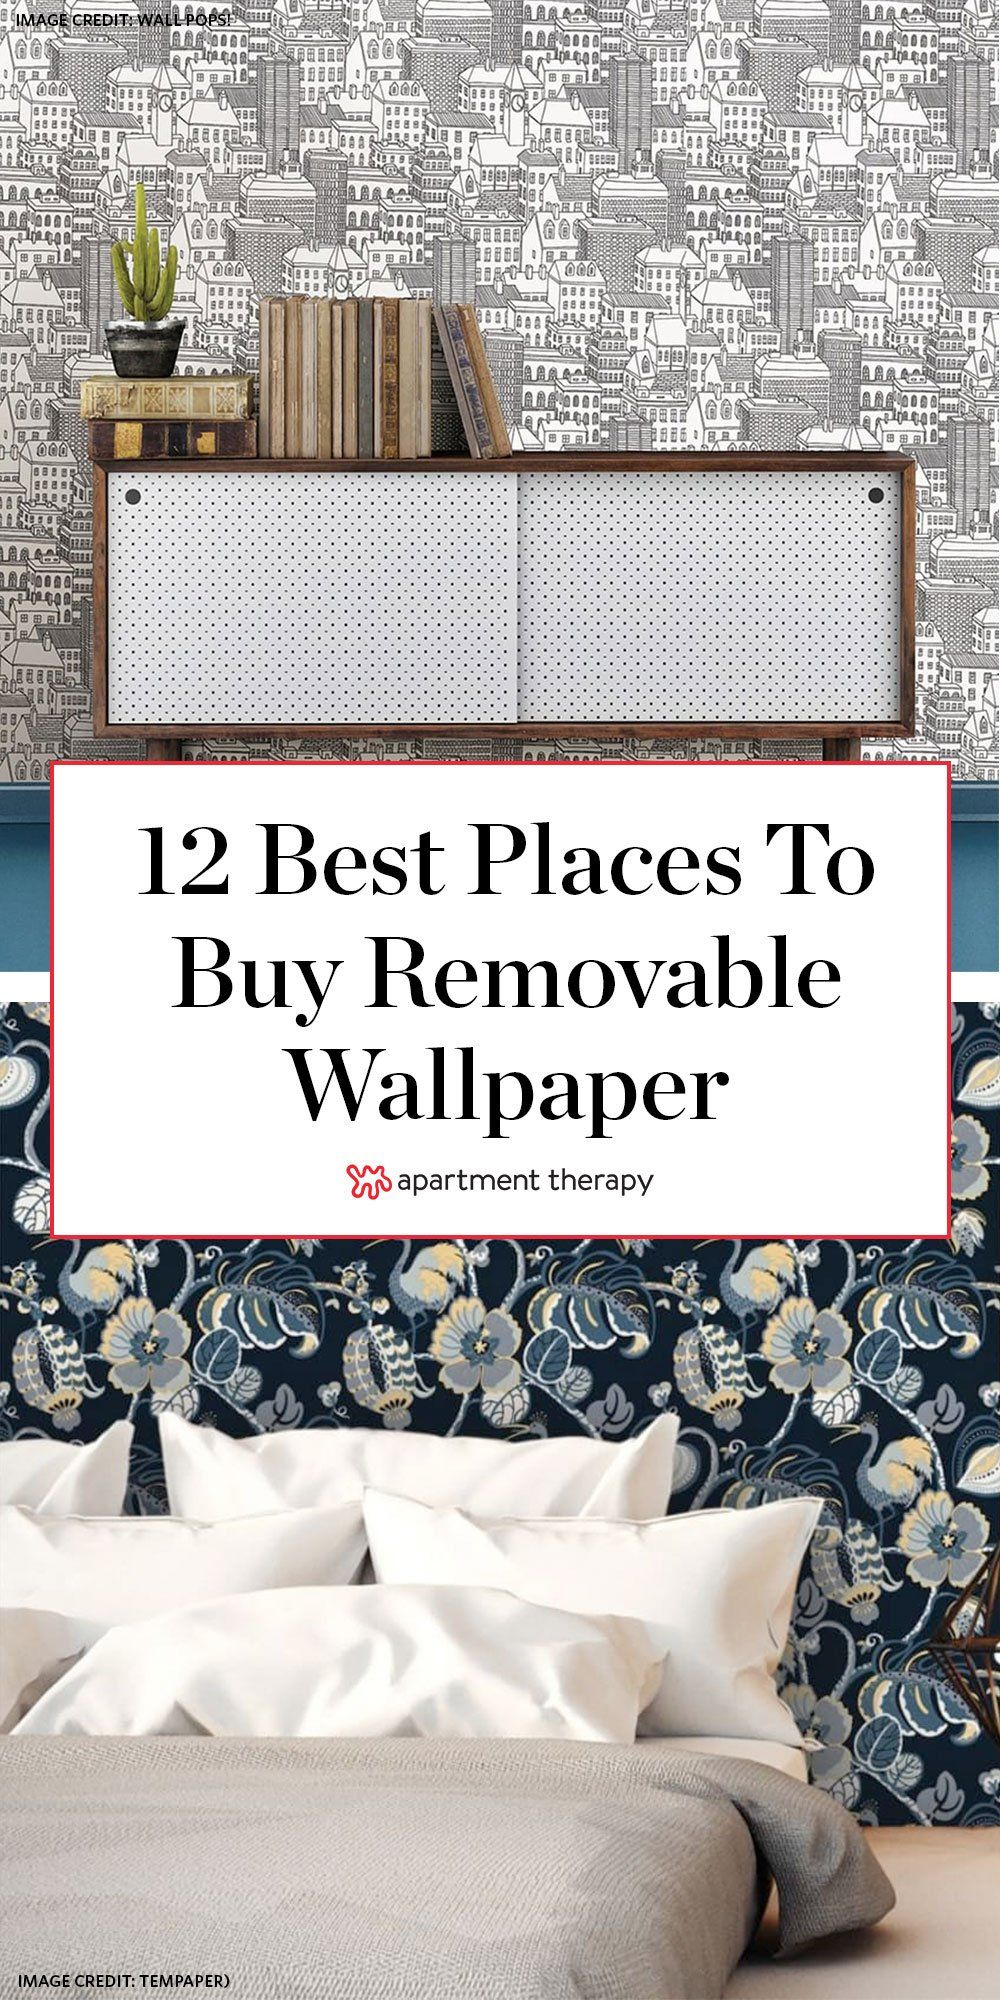 15 Removable Wallpaper Companies To Know In 2020 Removable Wallpaper For Renters Wallpaper Companies Removable Wallpaper